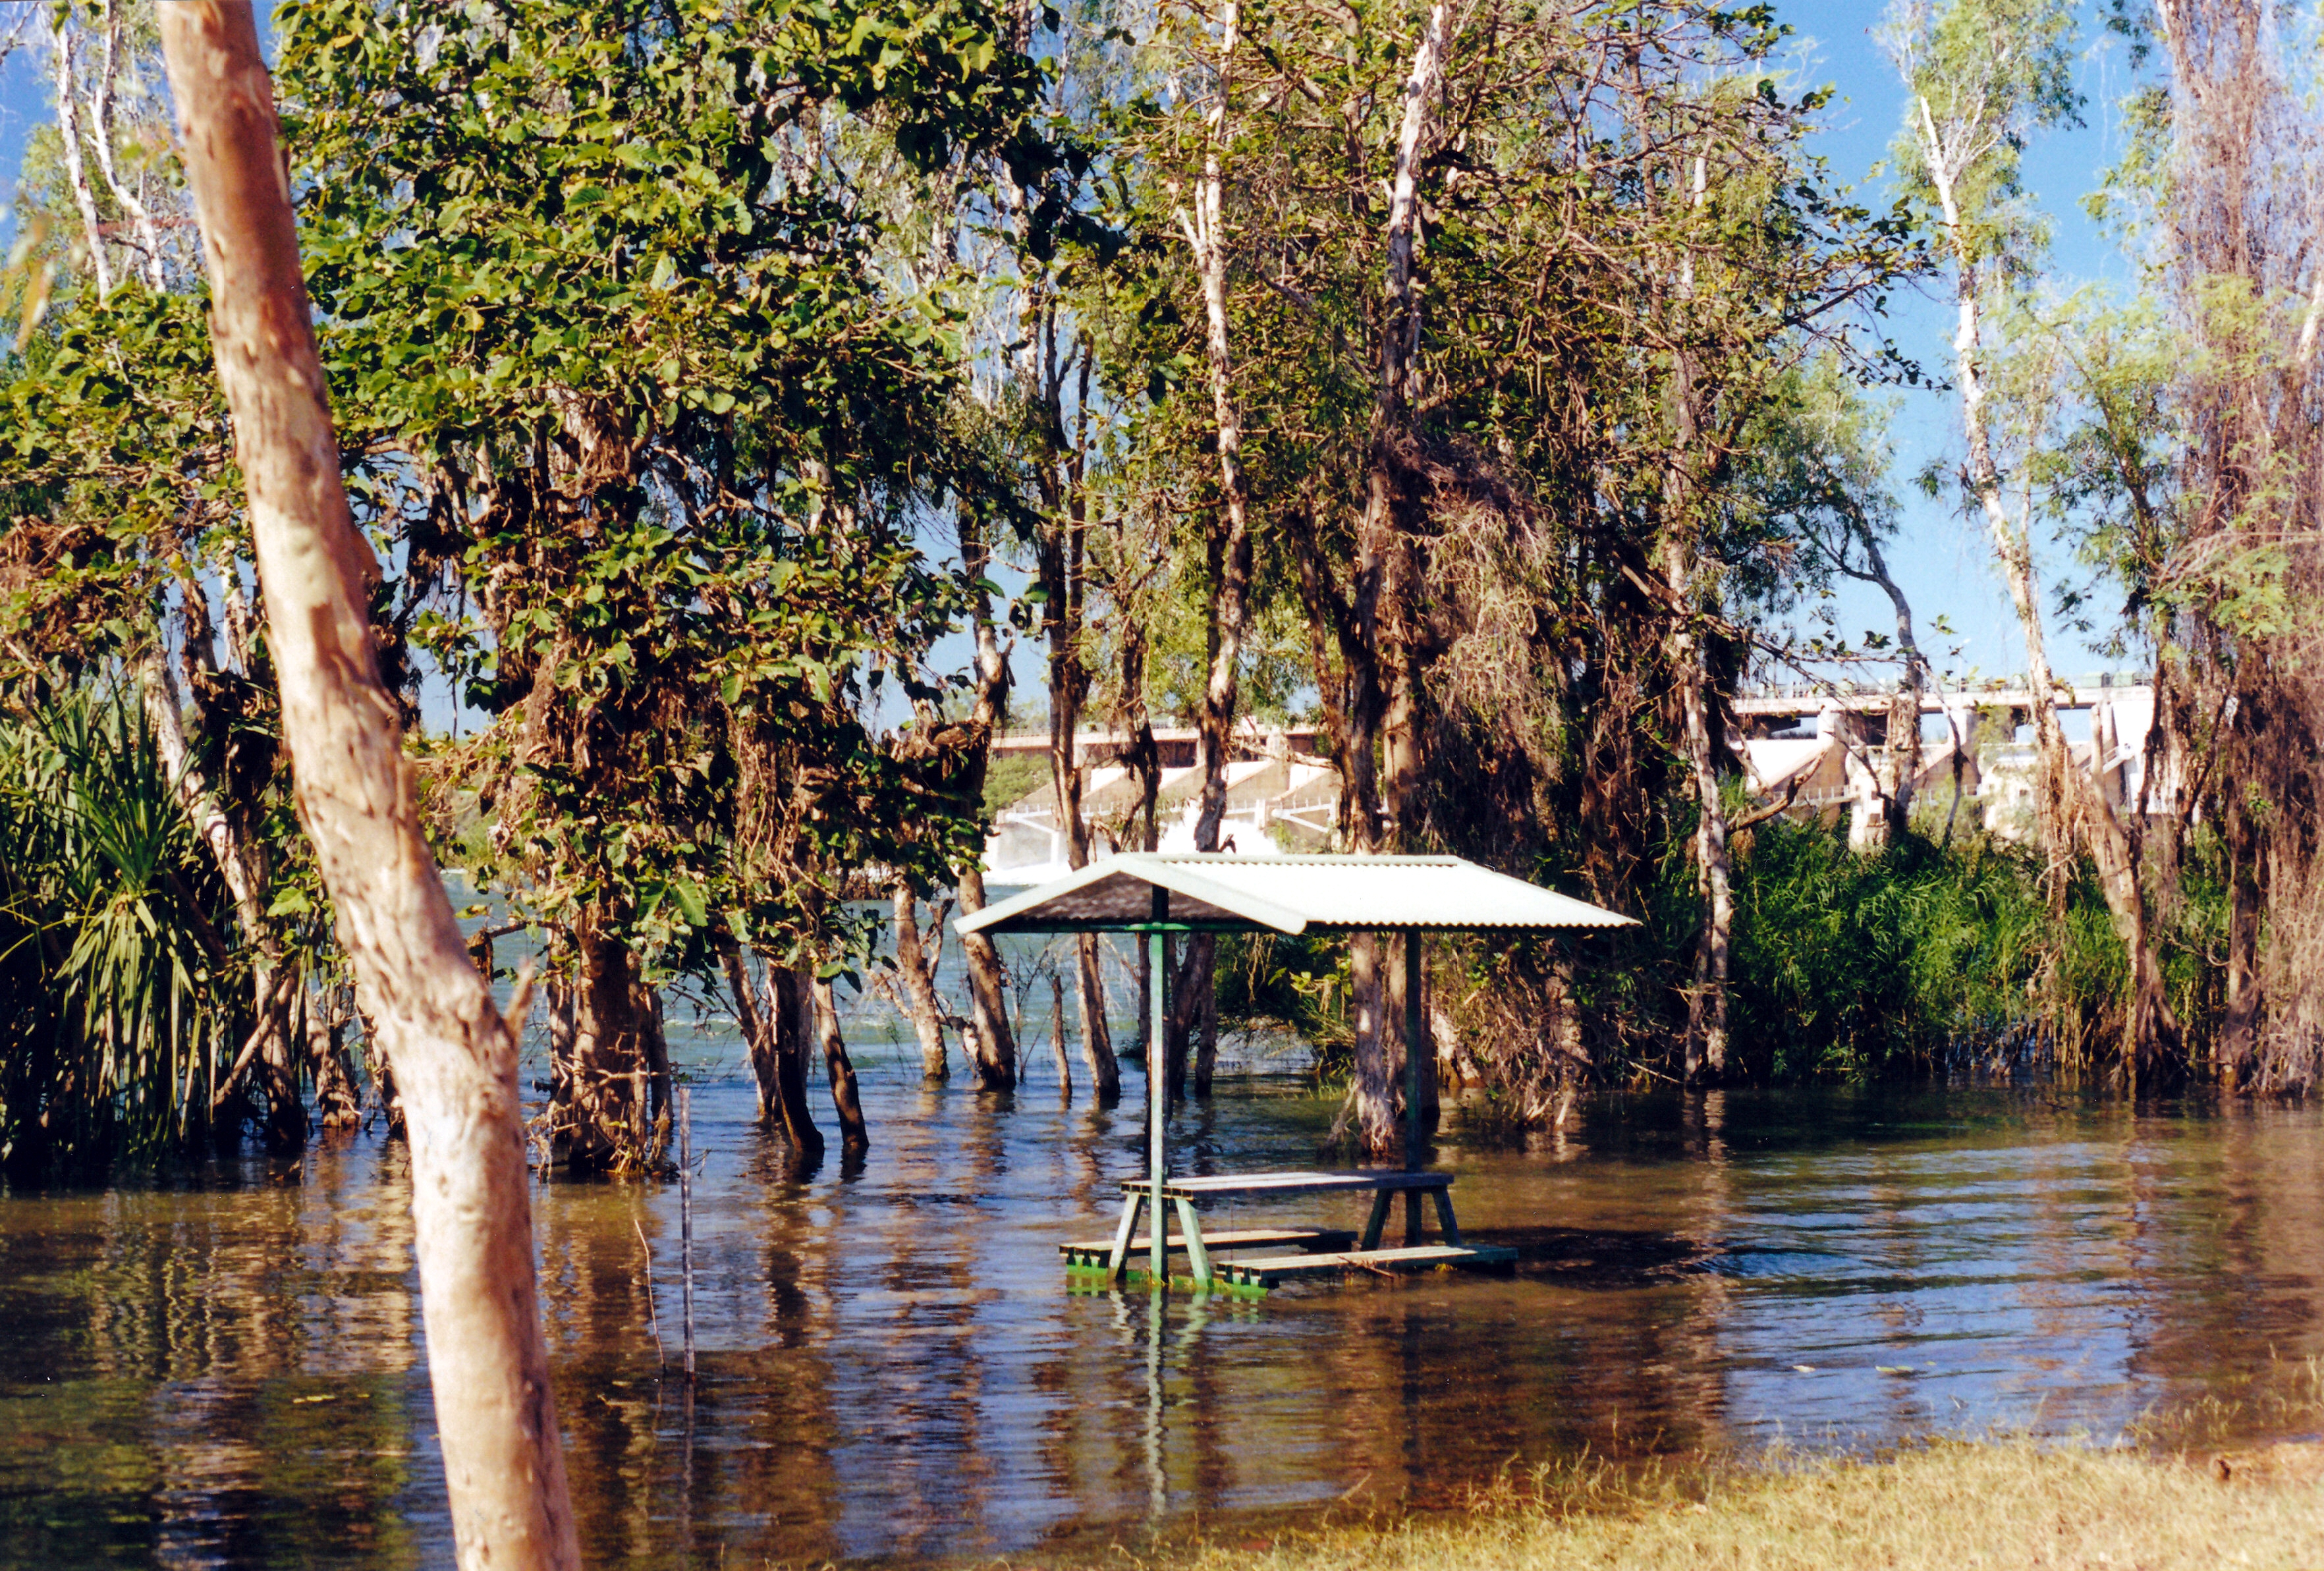 07-01-2000 flooded picnic area below dam